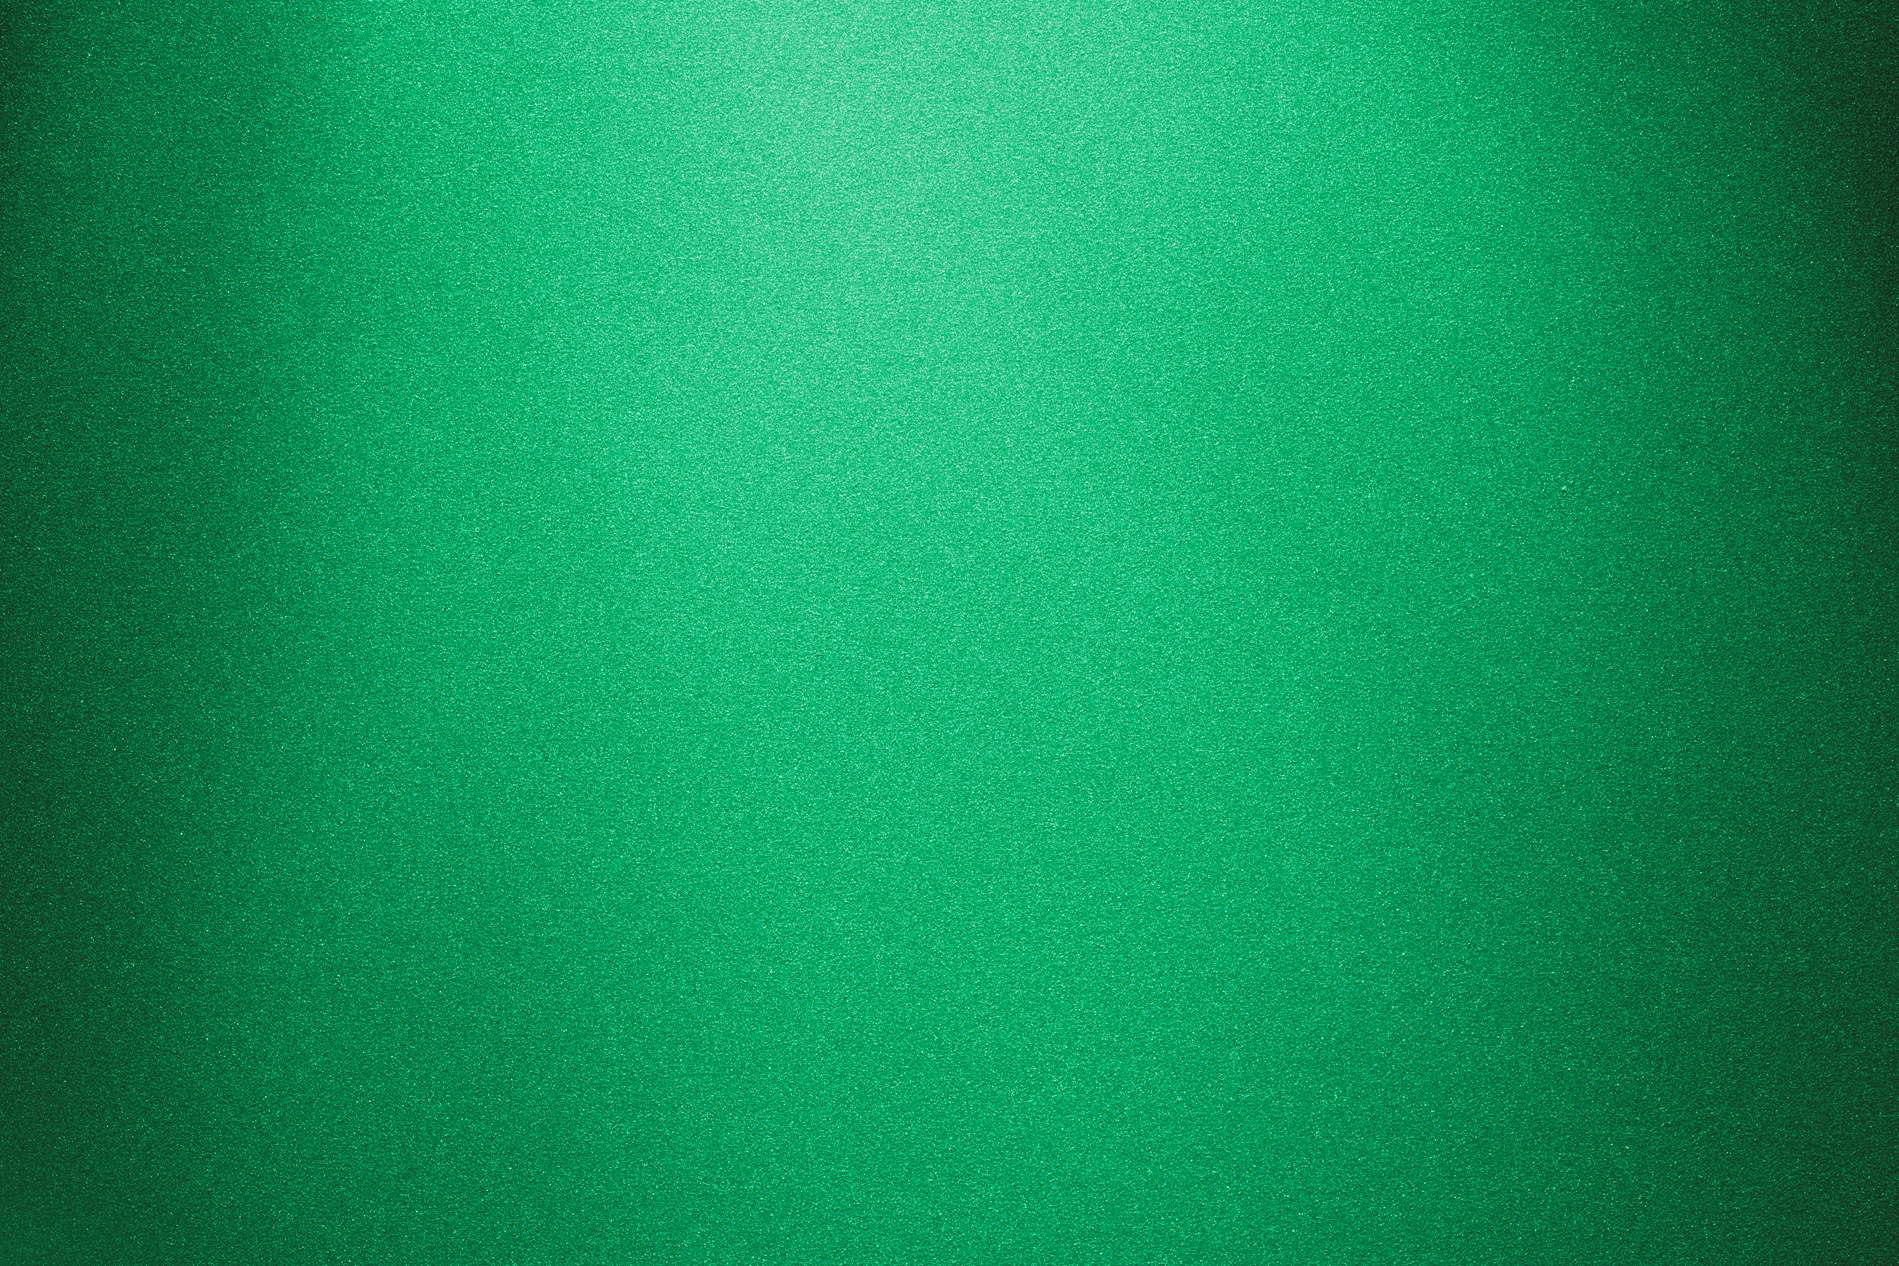 Lights For Green Wall : Clean Light Green Vintage Wall Background - PhotoHDX